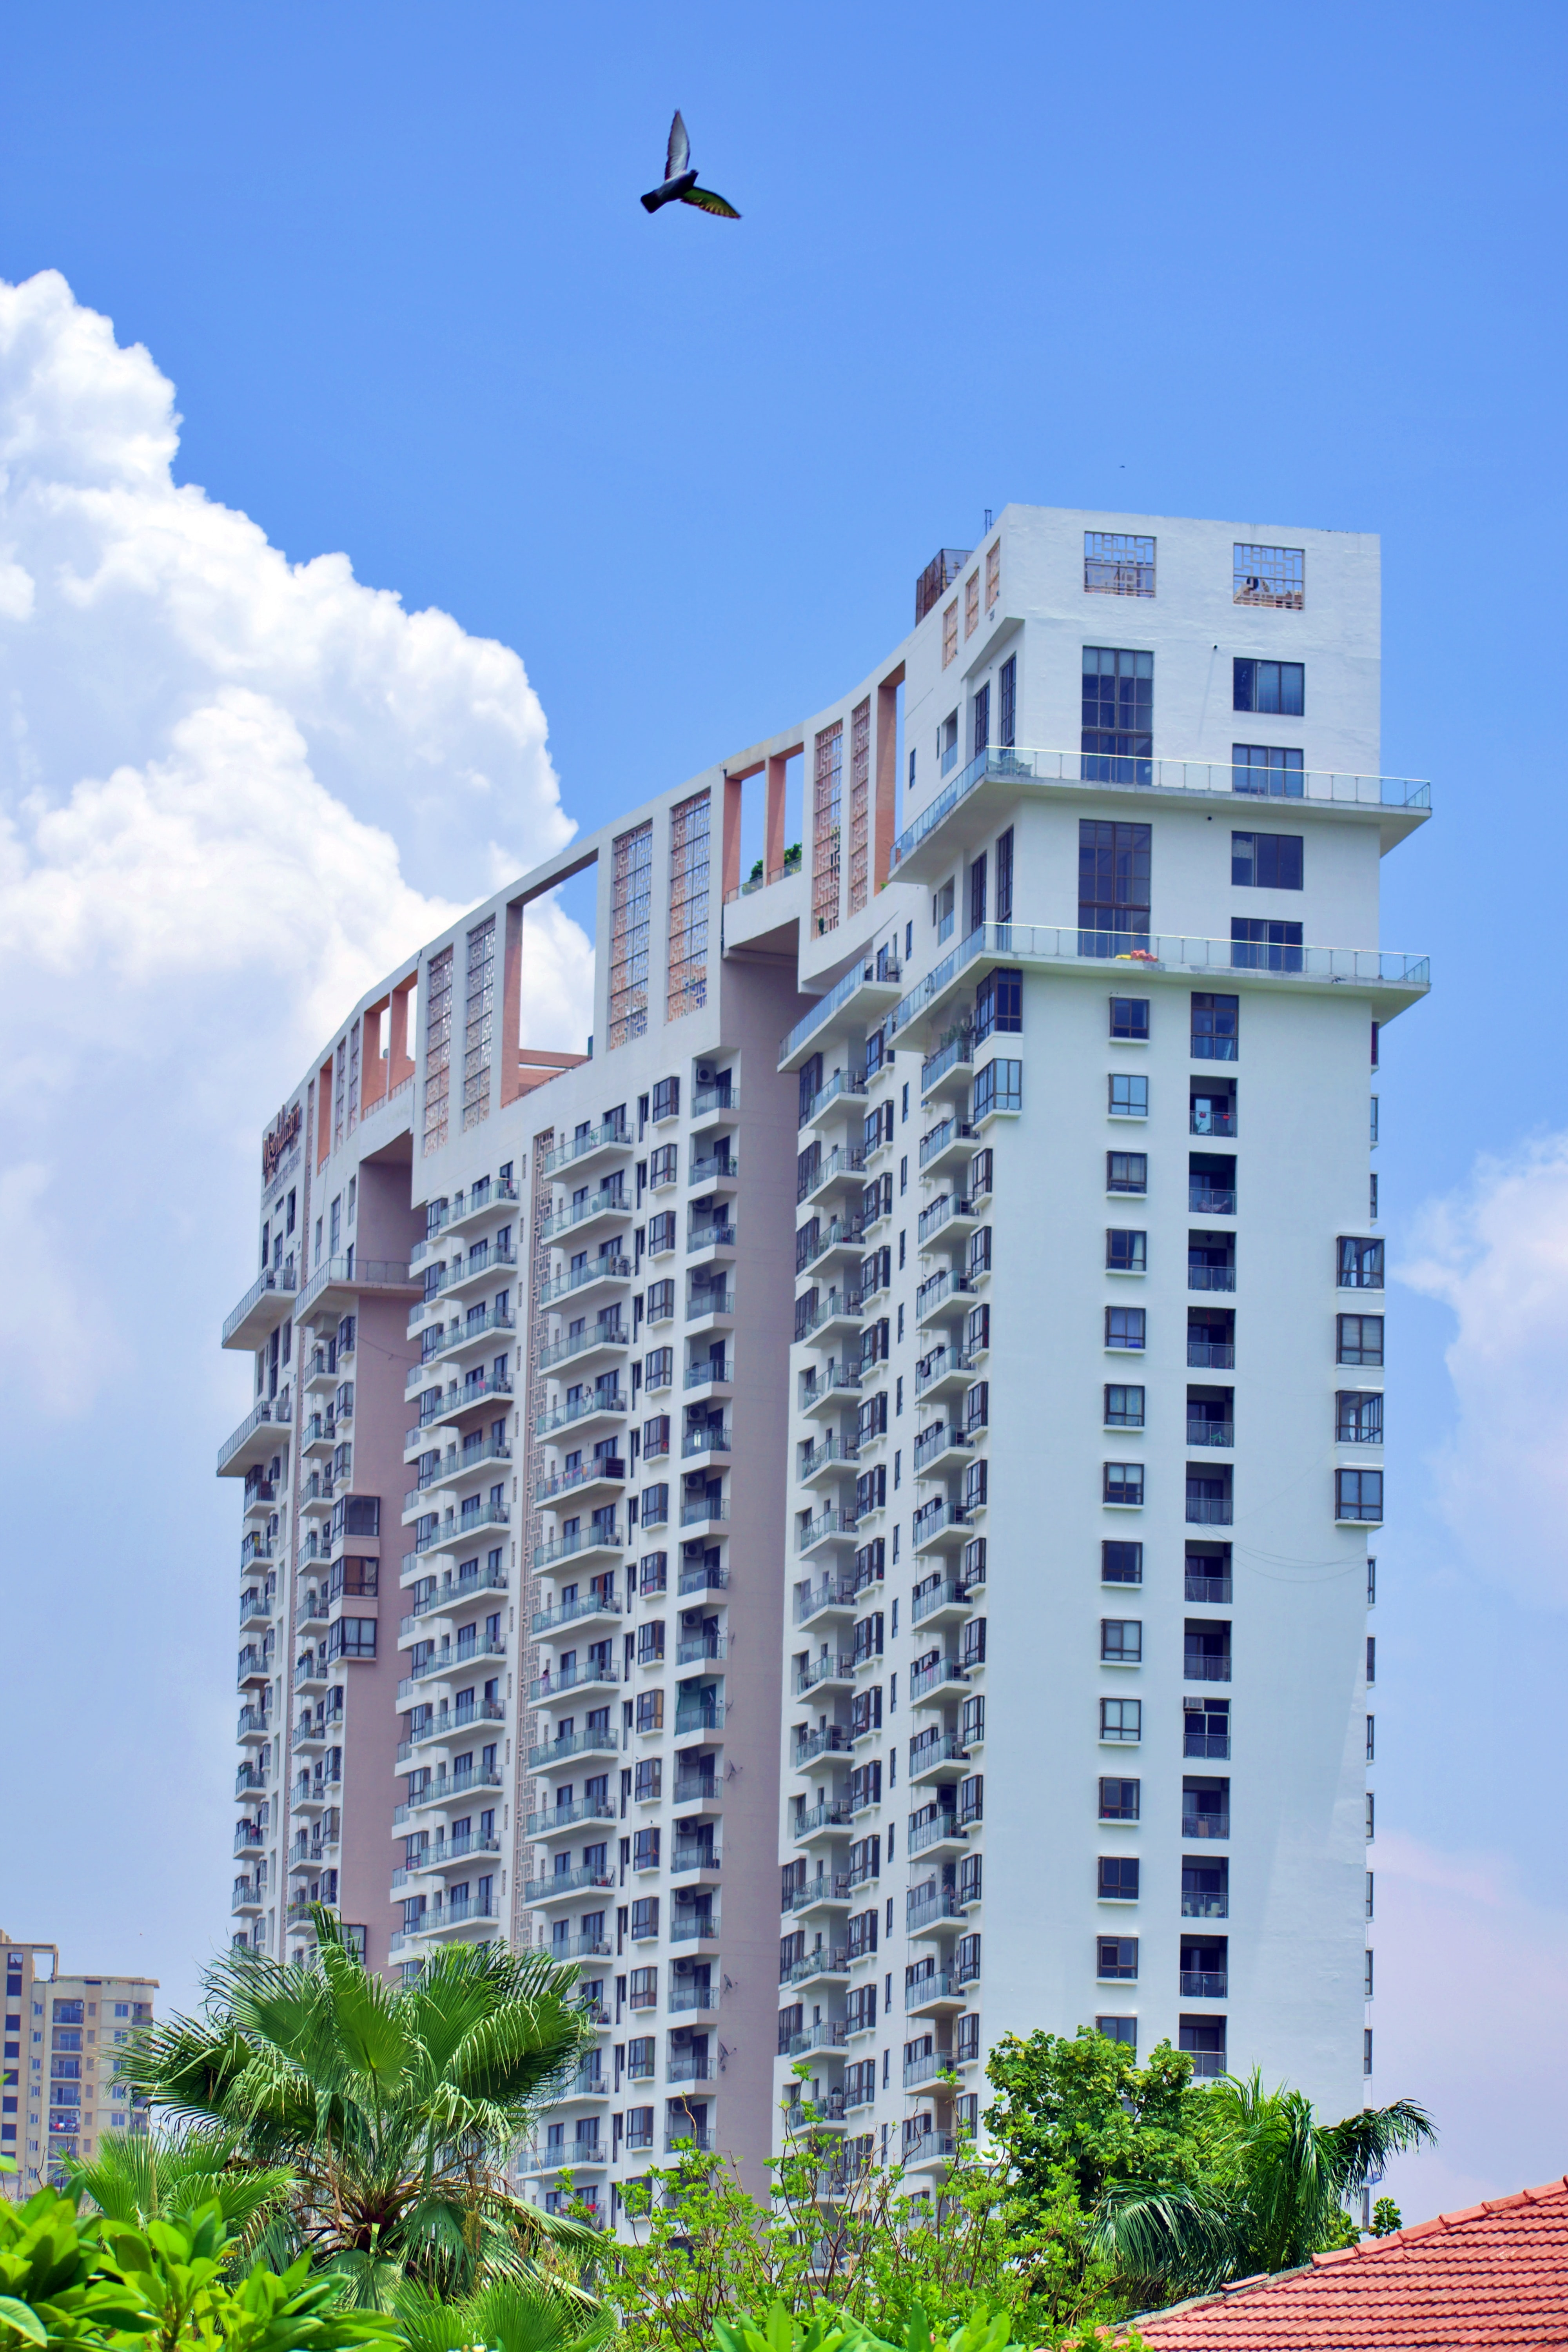 apartment building with blue skies - lease engine - multifamily apartment marketing